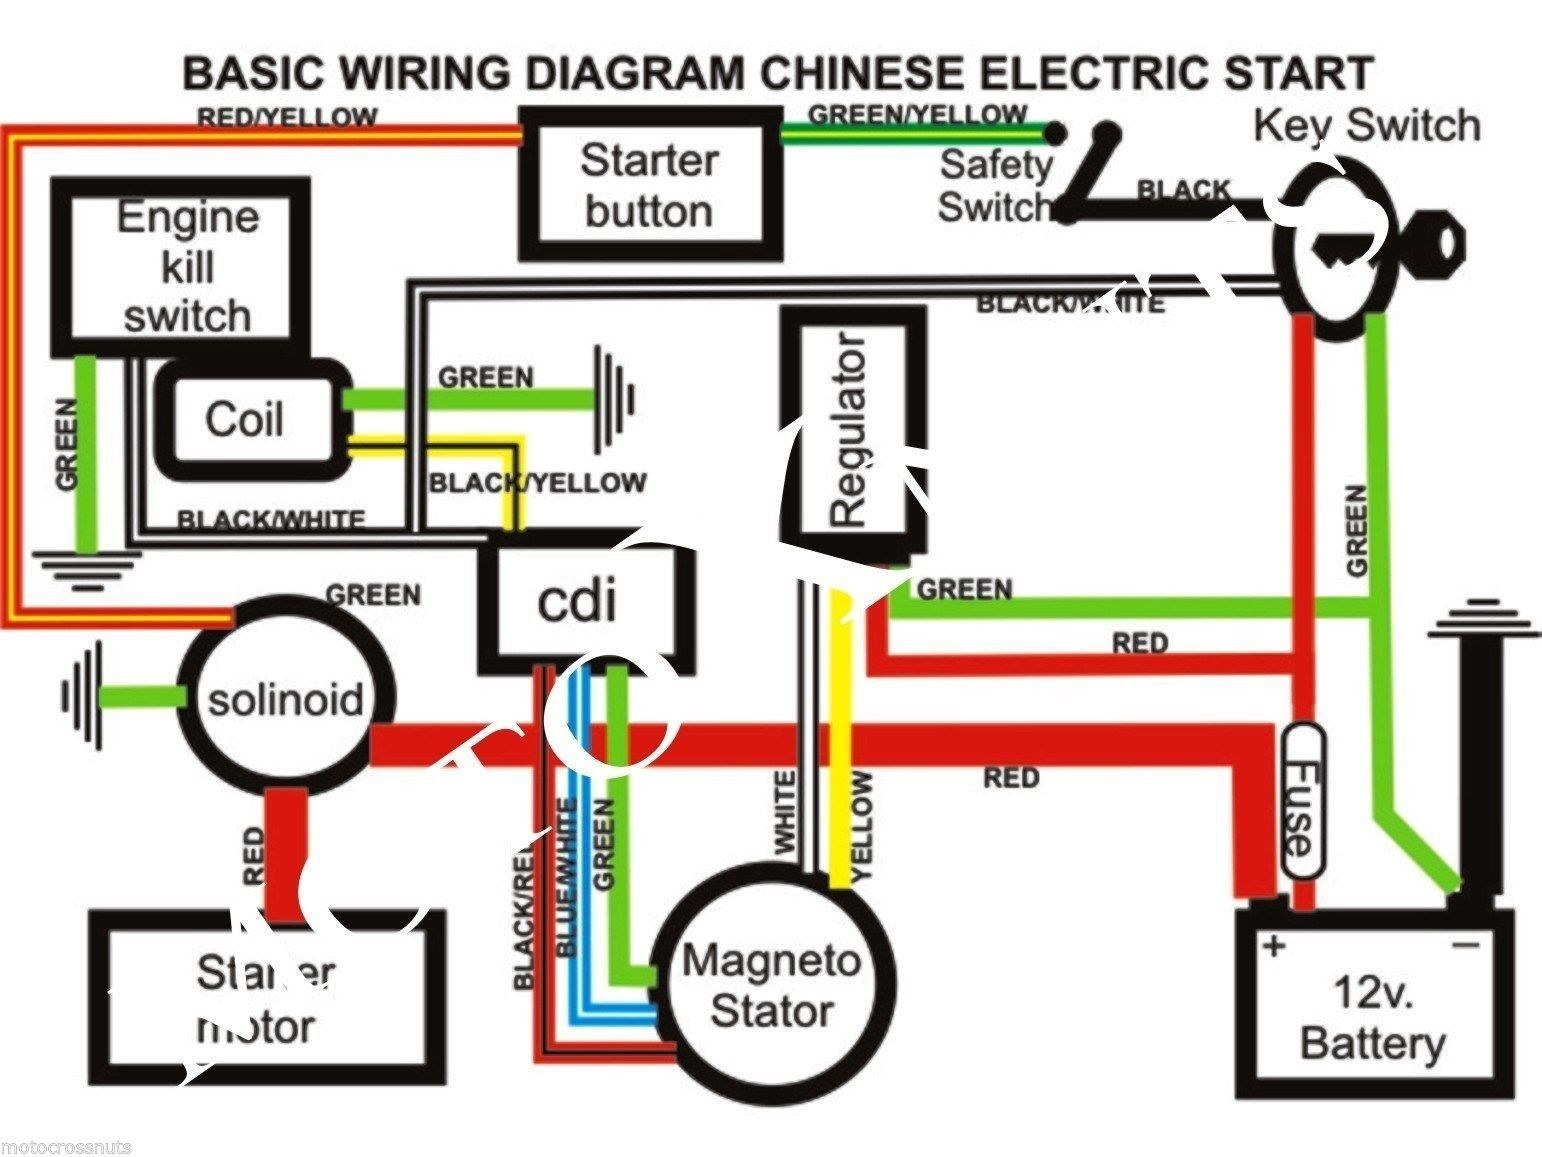 Wiring Schematic for Ignition Switch for Chinese 4 Wheeler for Eton 4 Wheeler Wiring Harnes Wiring Diagram Of Wiring Schematic for Ignition Switch for Chinese 4 Wheeler